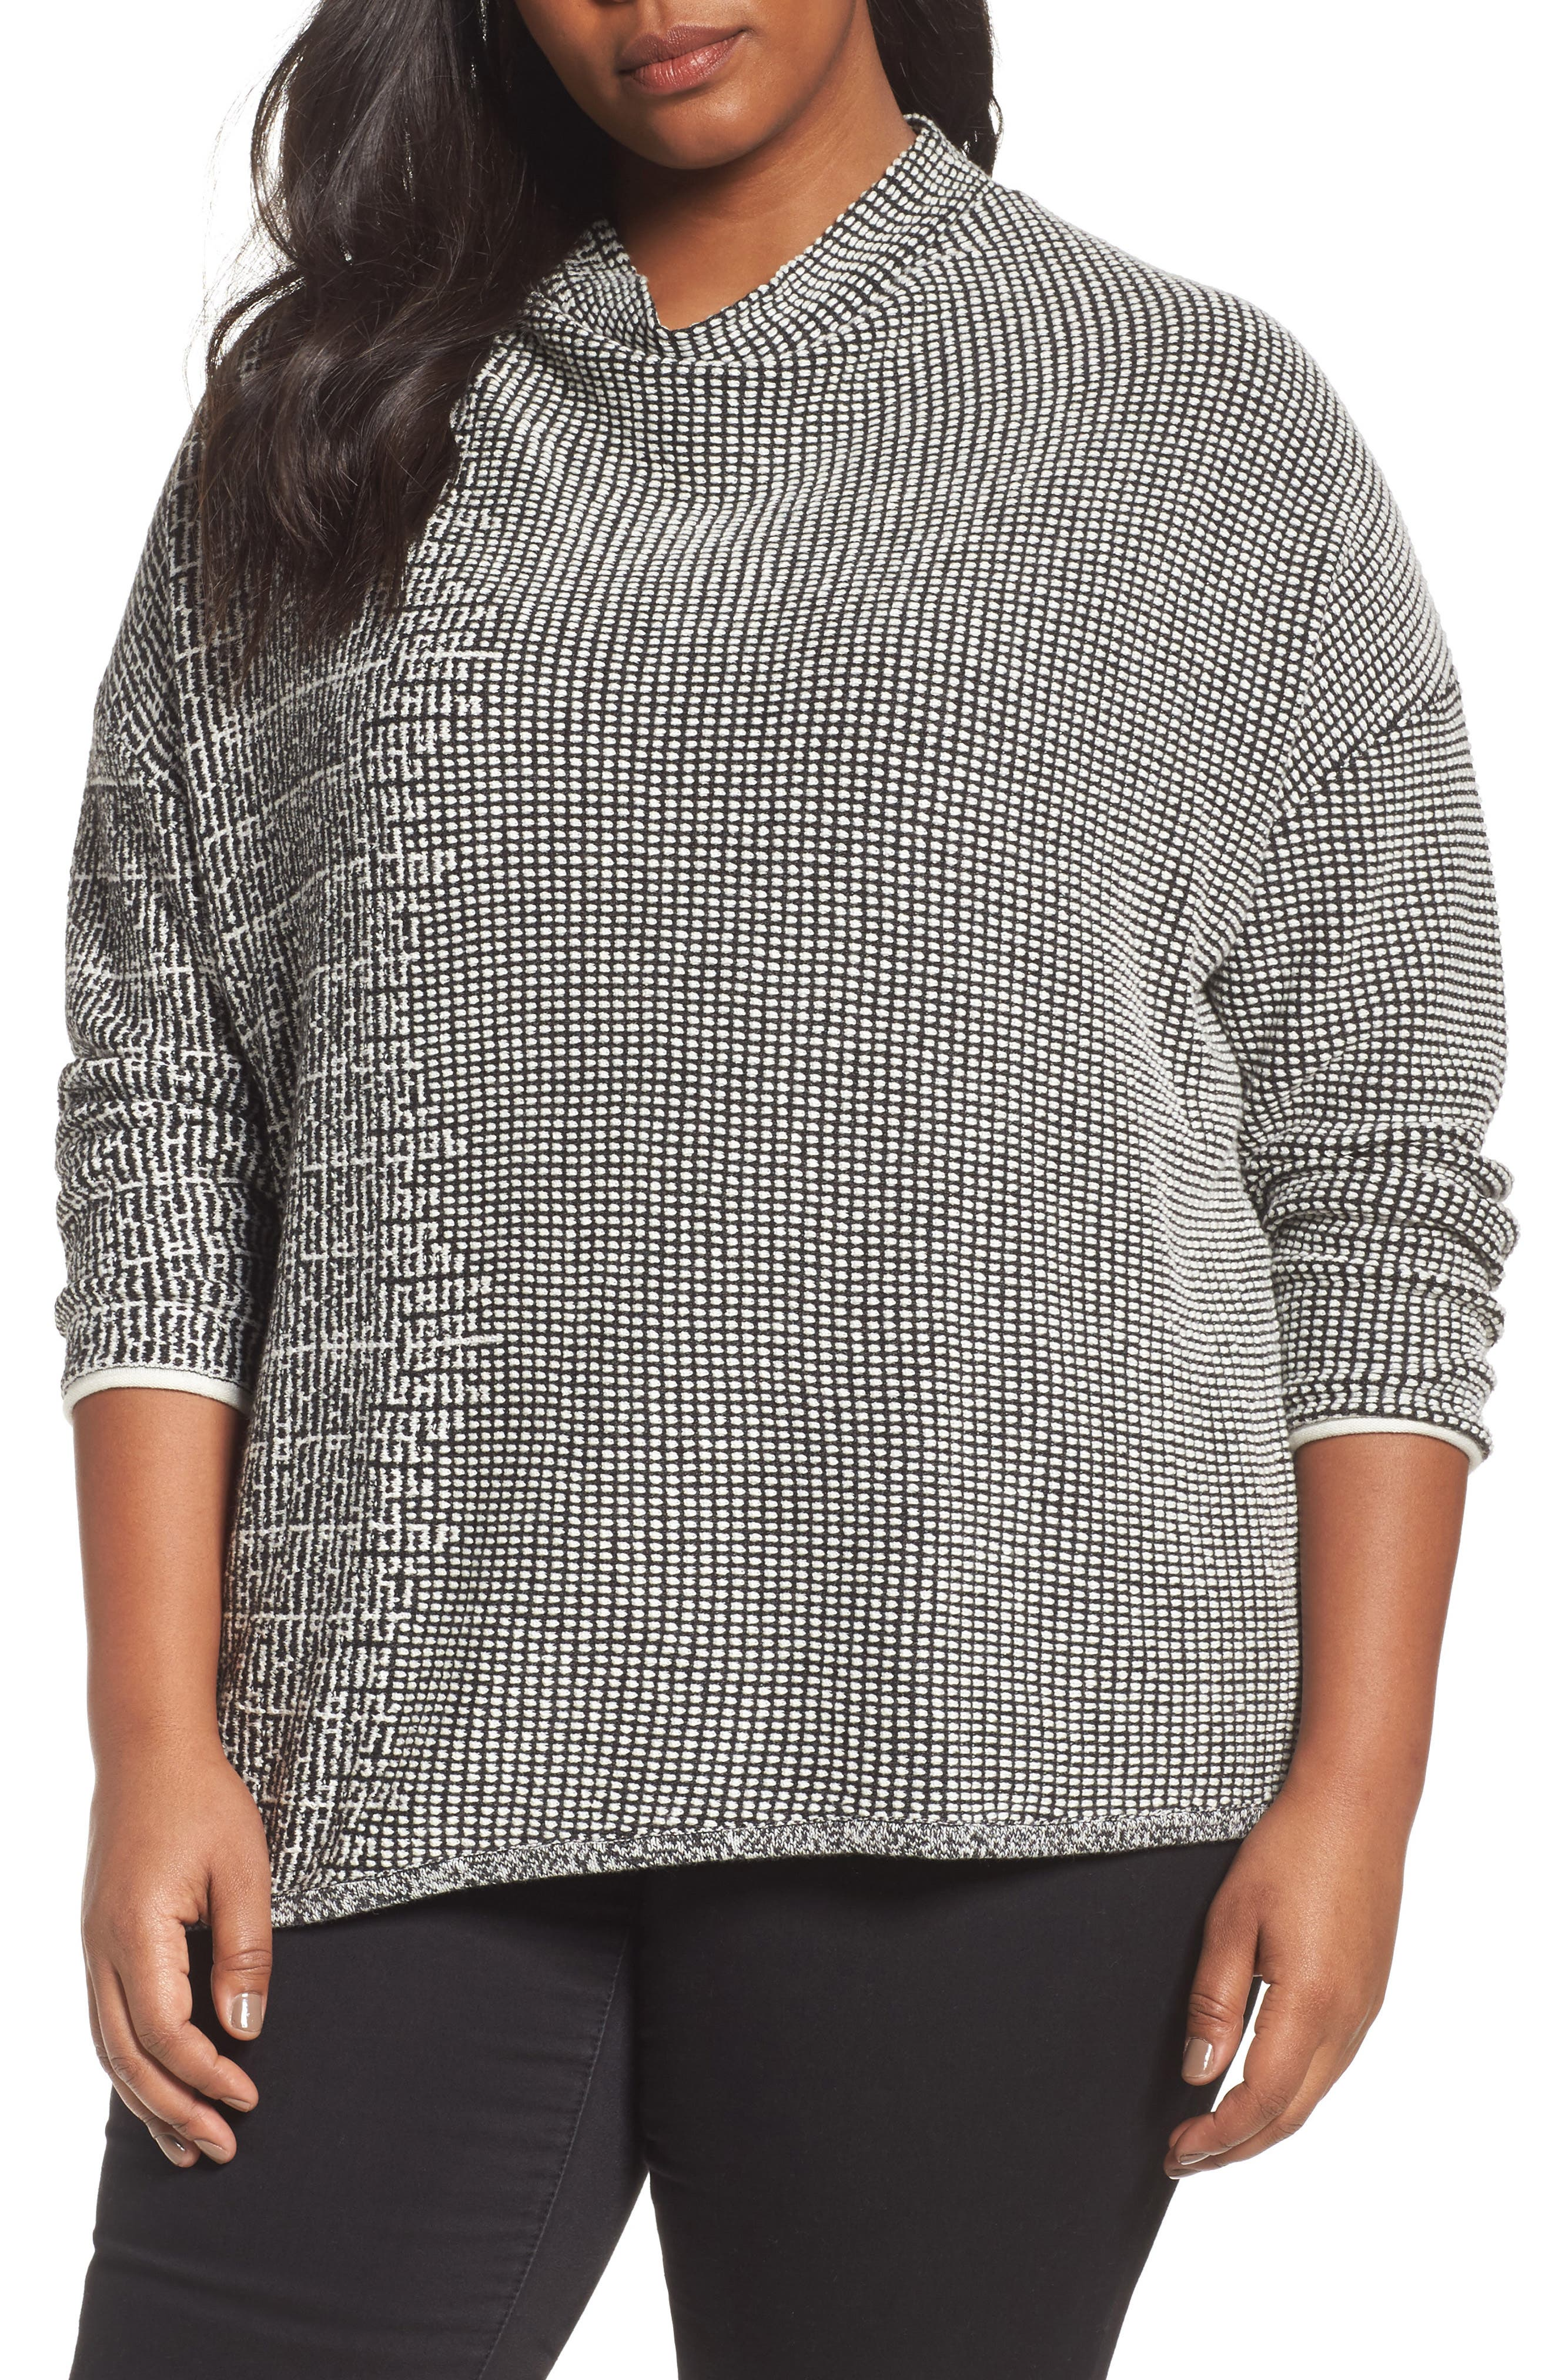 Frosted Fall Sweater,                         Main,                         color, Black Multi